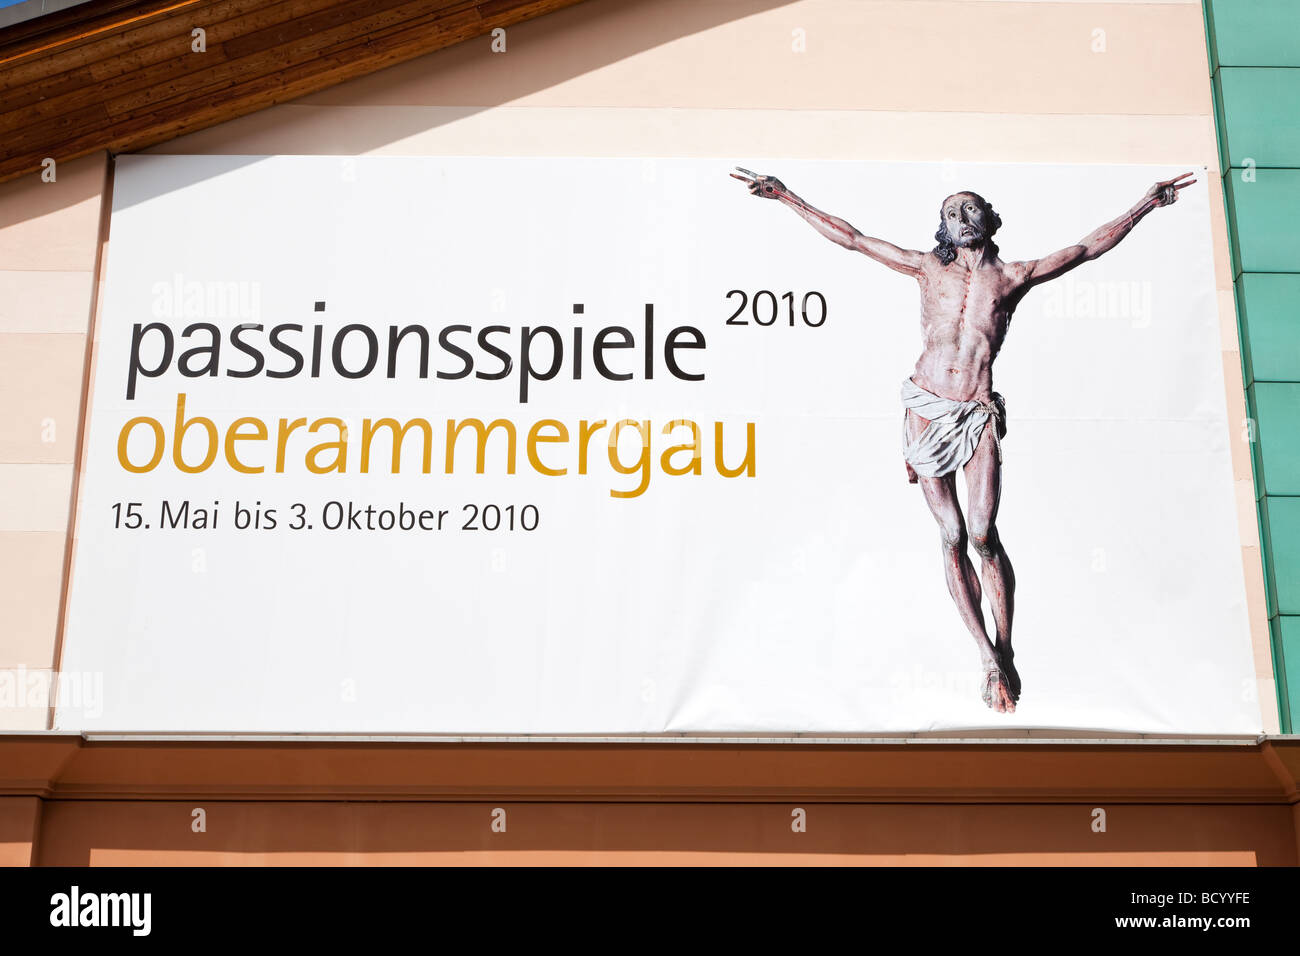 Oberammergau Passion Play Theatre Poster 2010 Bavaria Germany